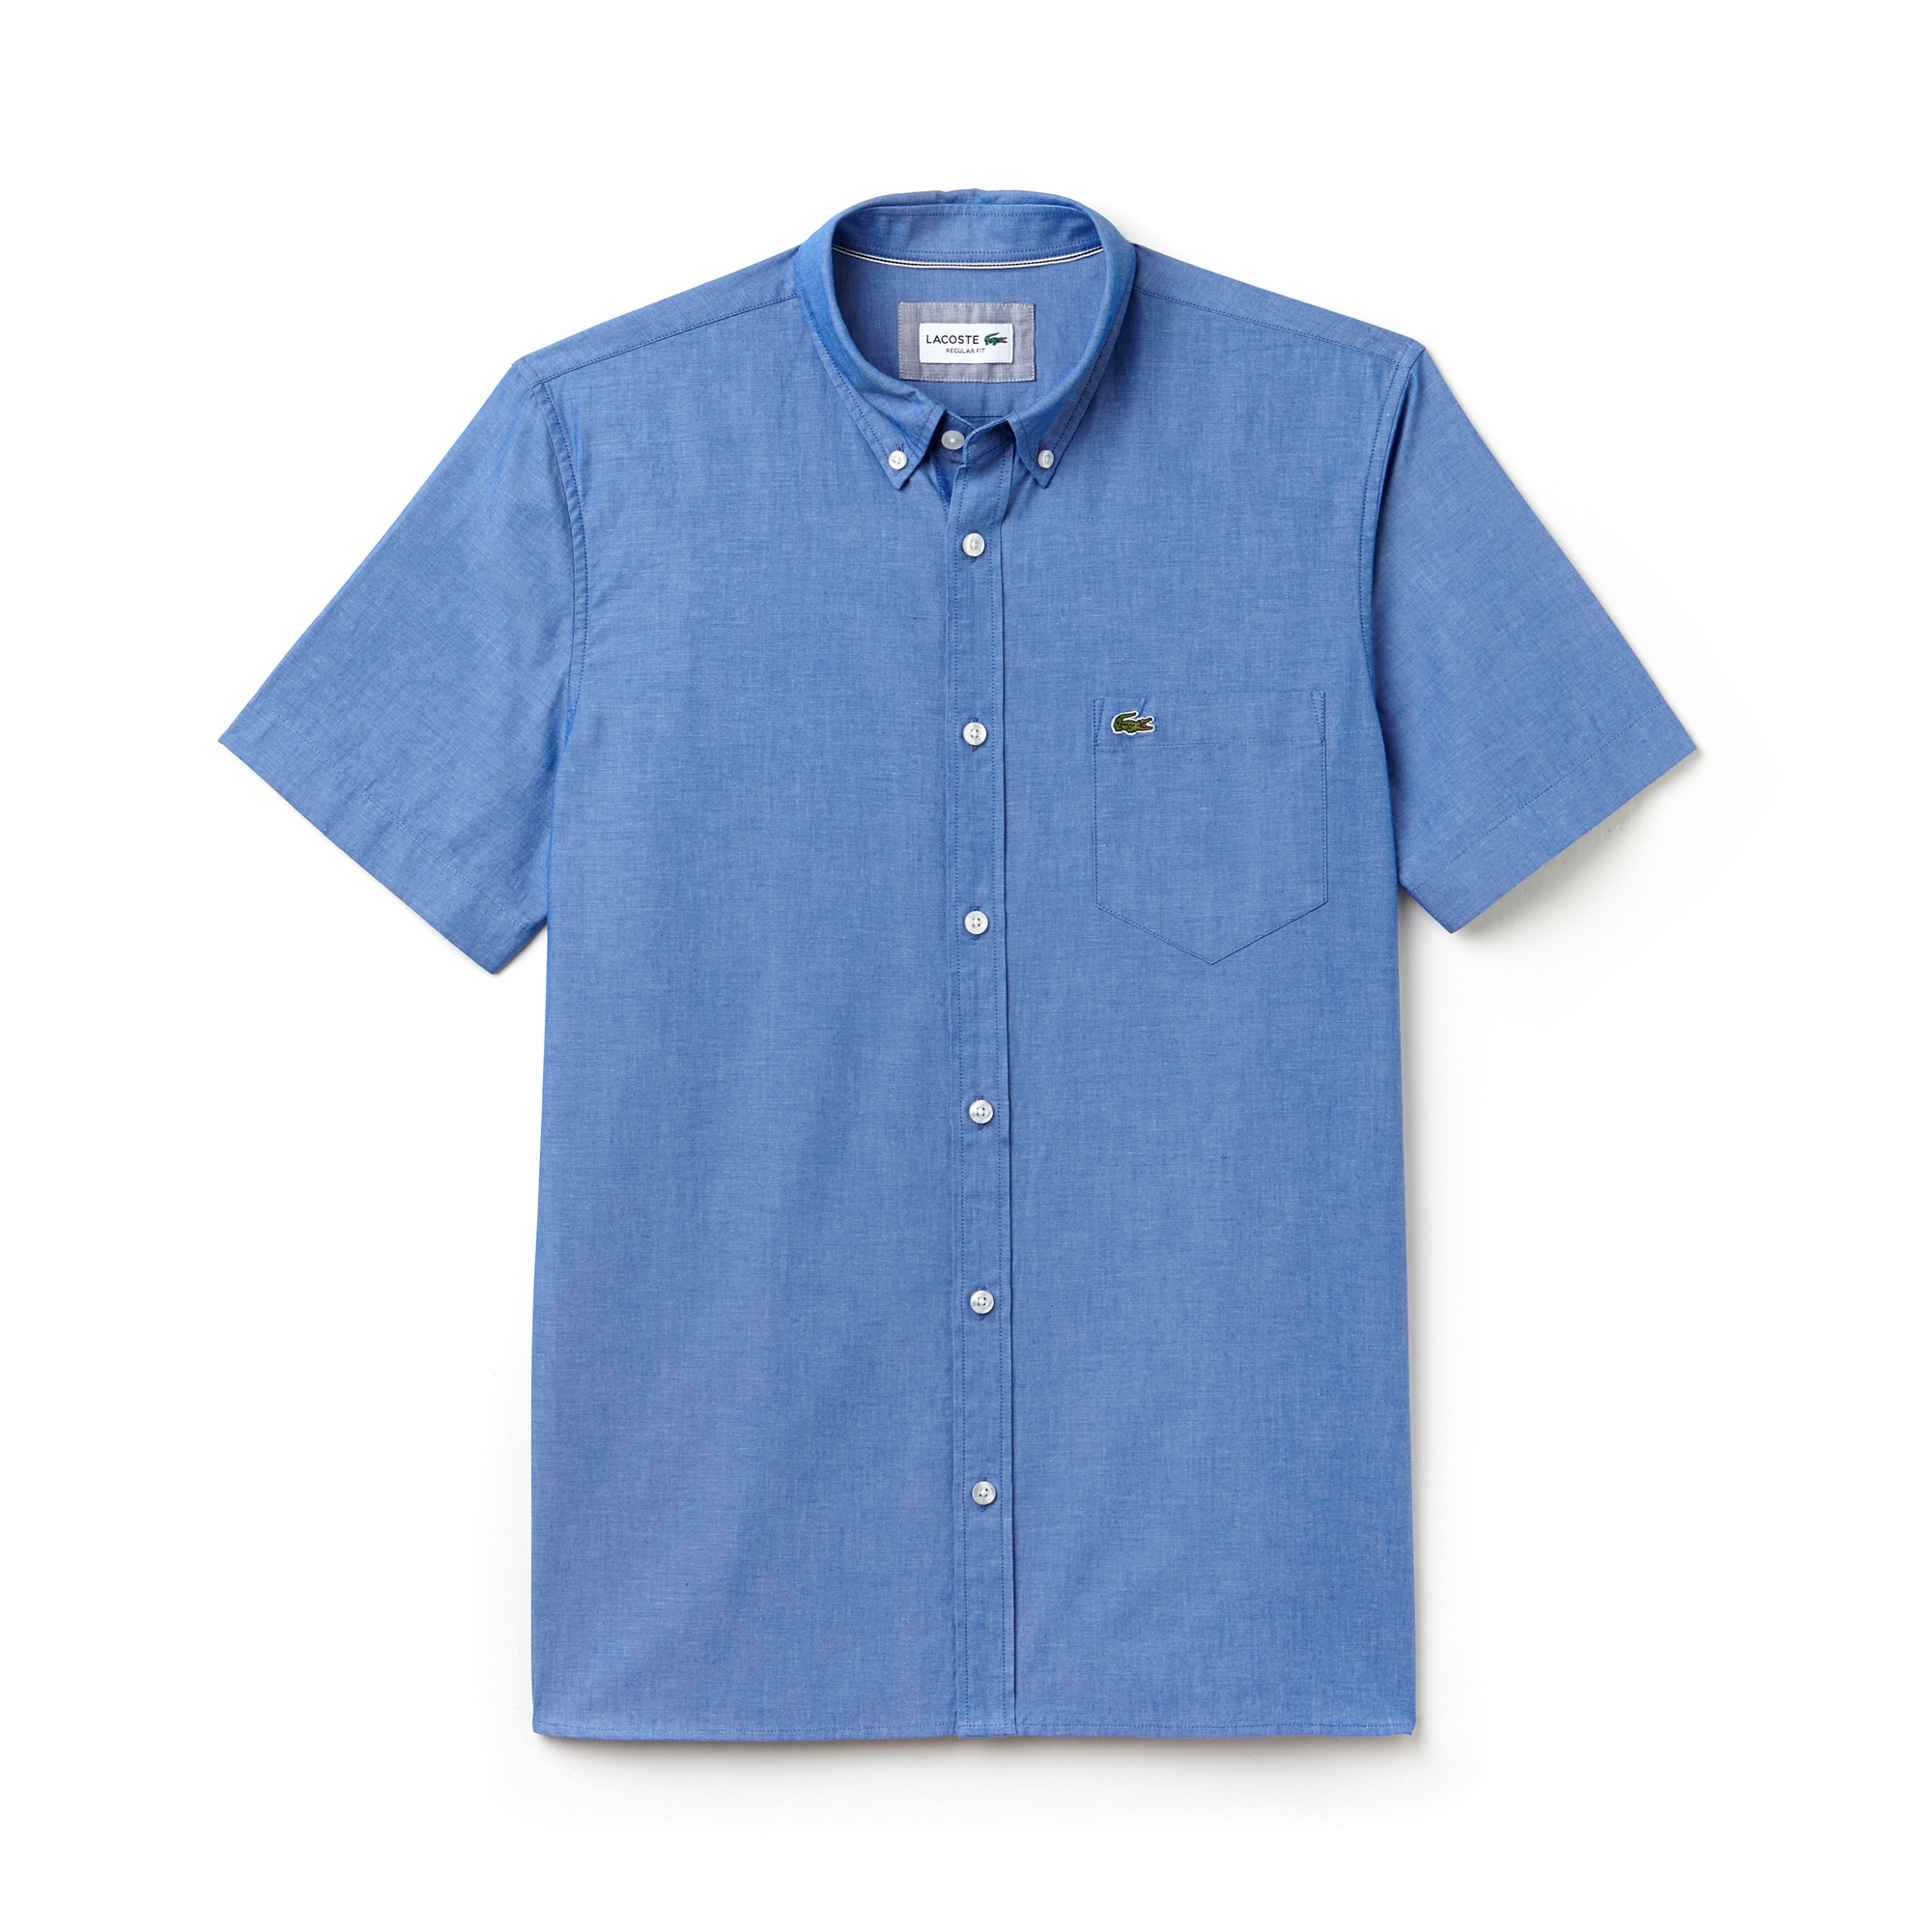 Men's Regular Fit Cotton Chambray Shirt